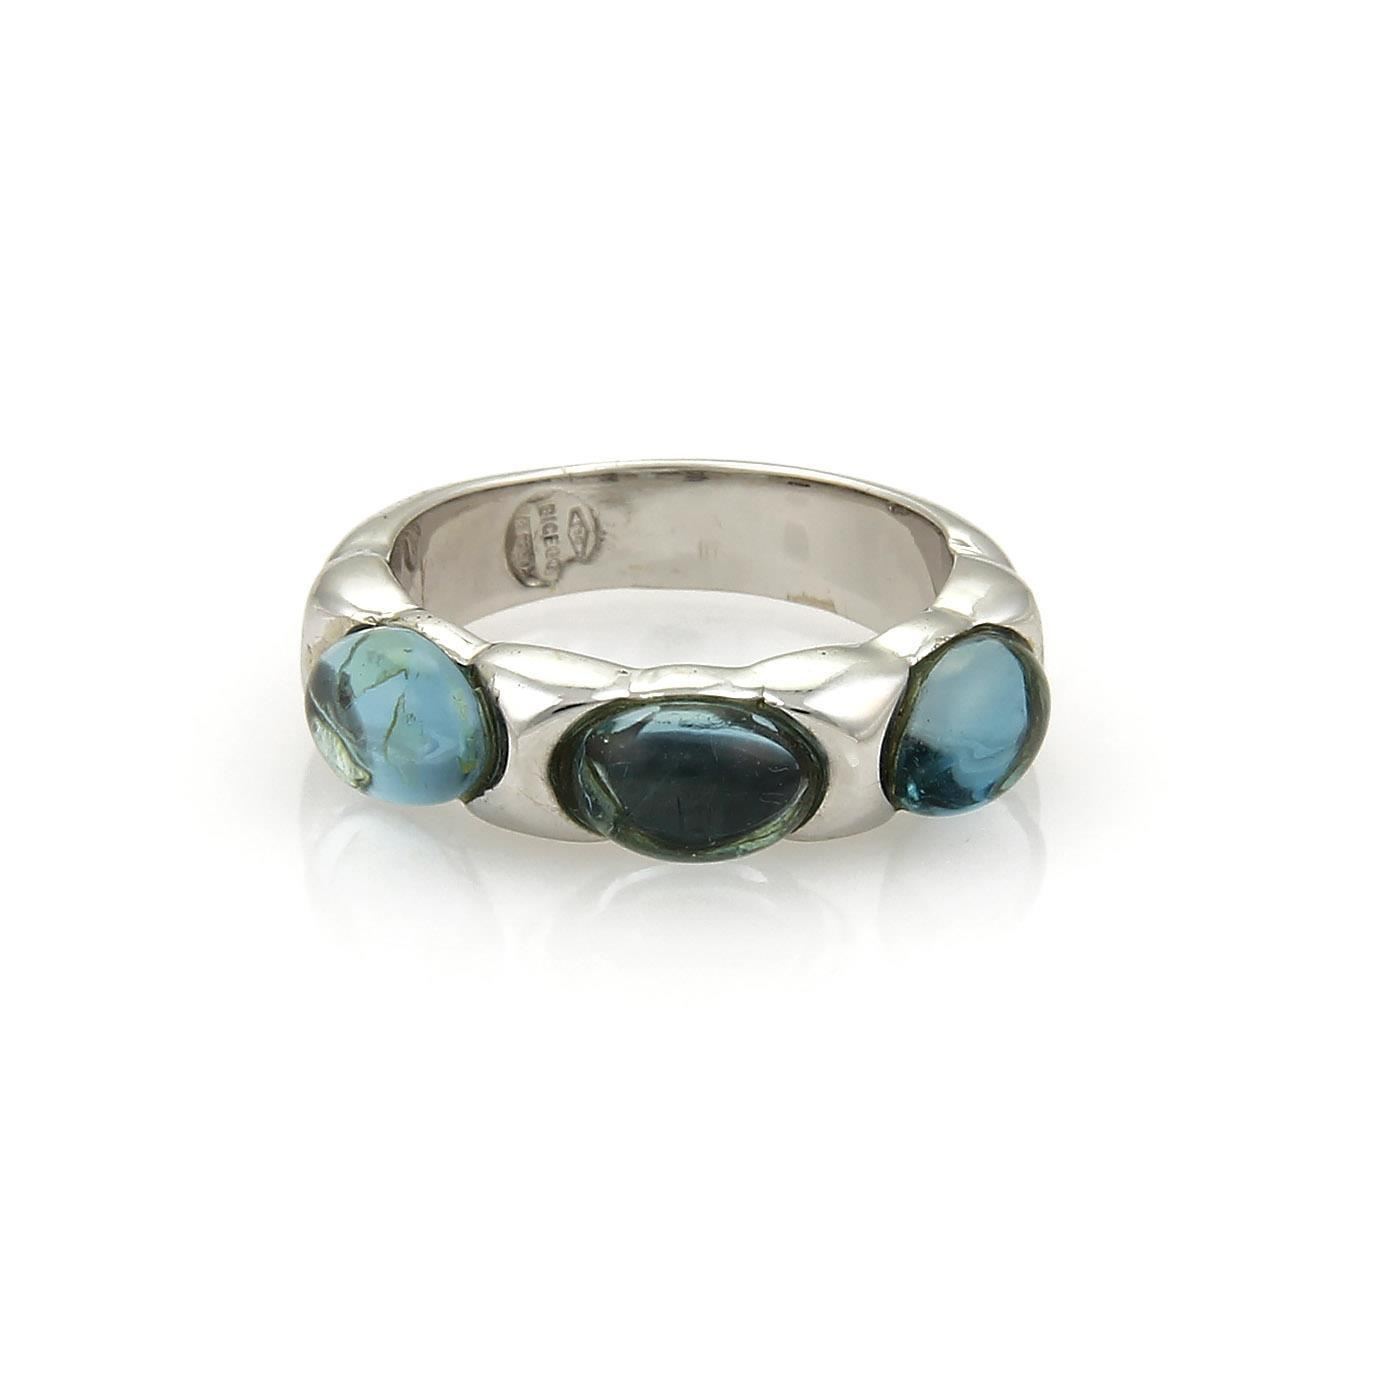 "Image of ""Marco Bicego 18K White Gold & Blue Topaz Band Ring Size 7.5"""